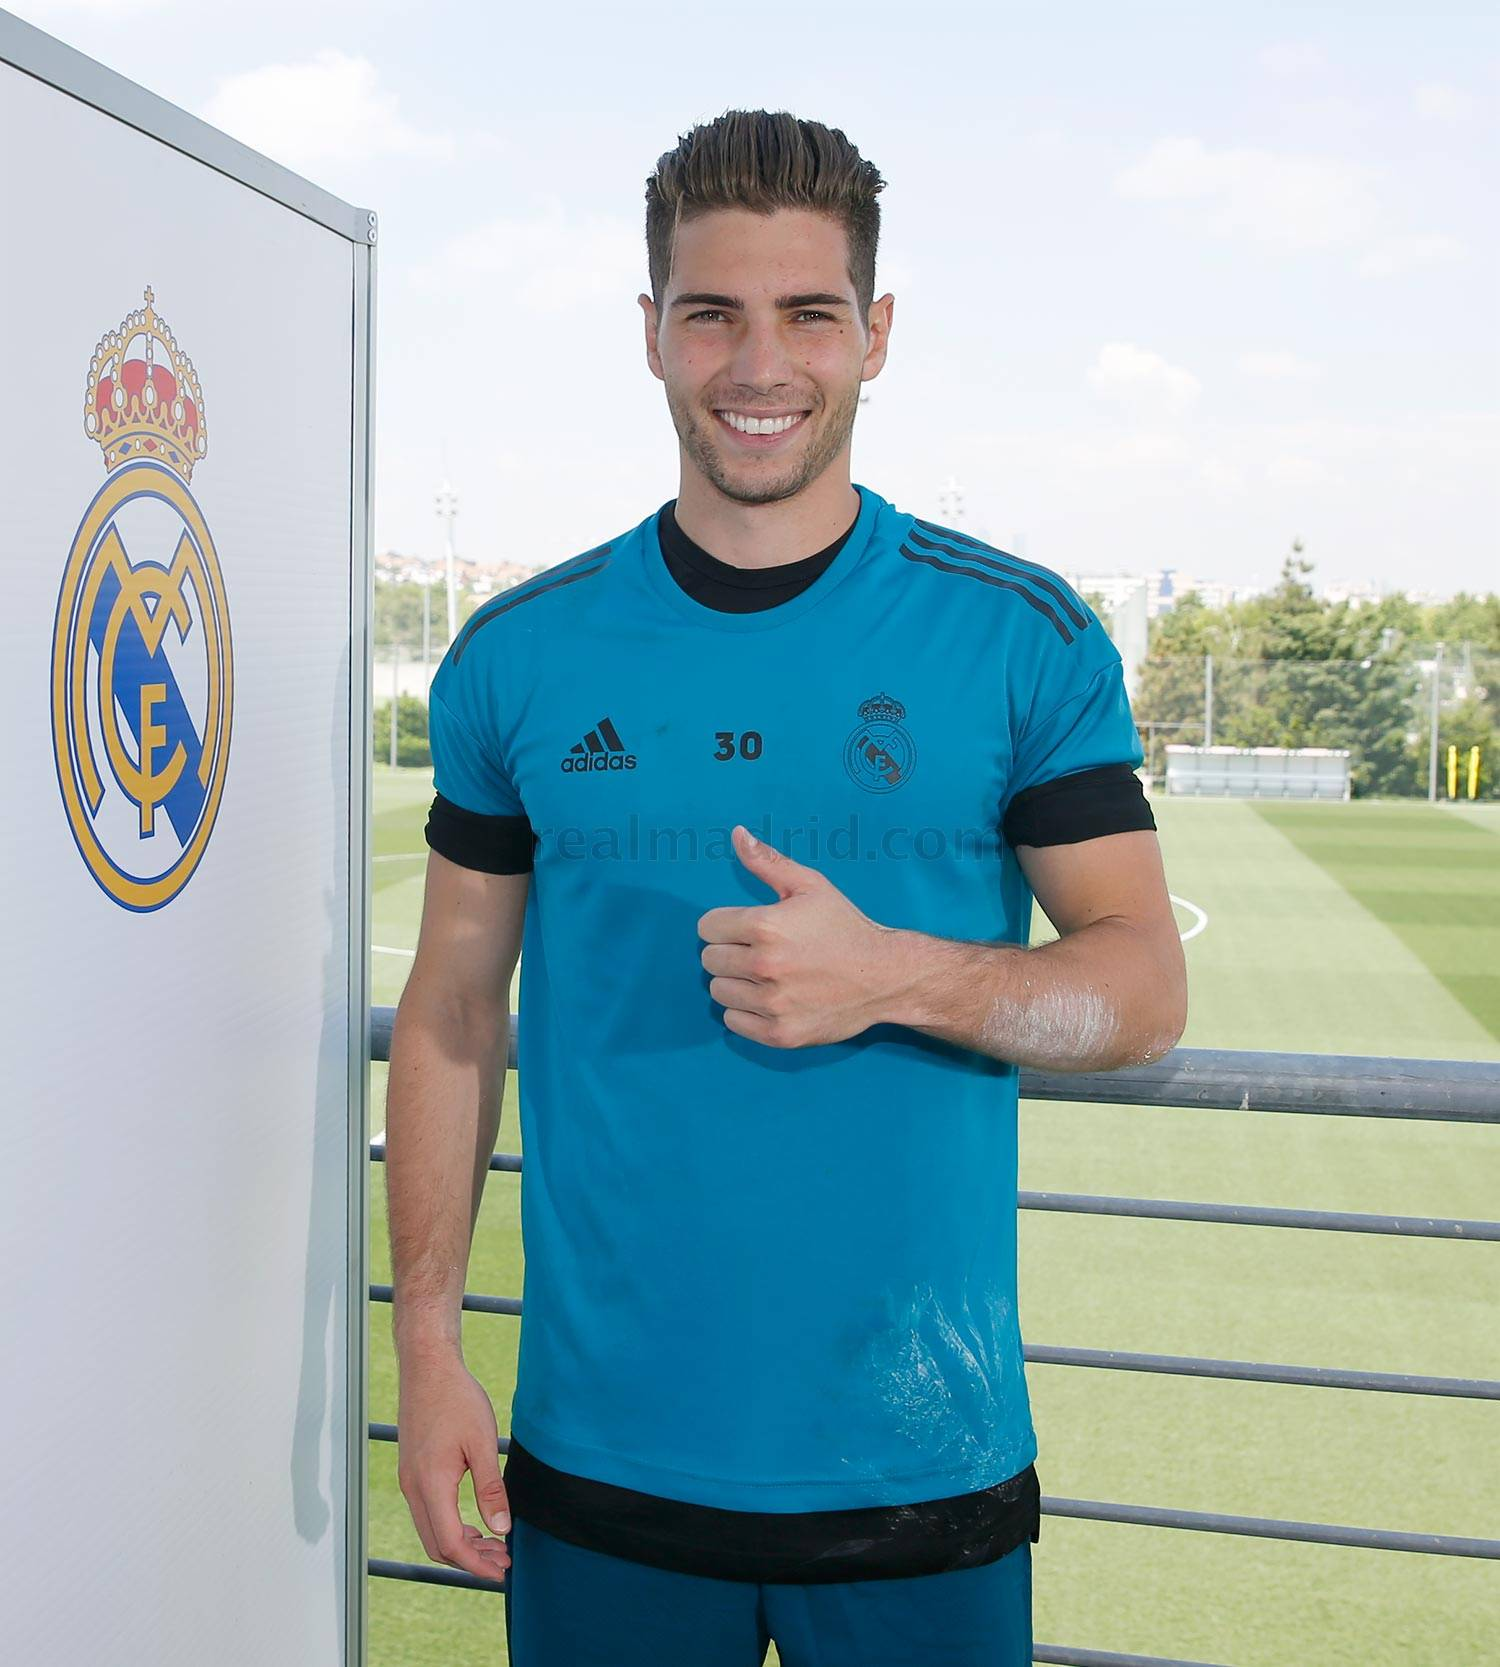 Real Madrid - Luca durante el Open Media Day 2018 - 22-05-2018